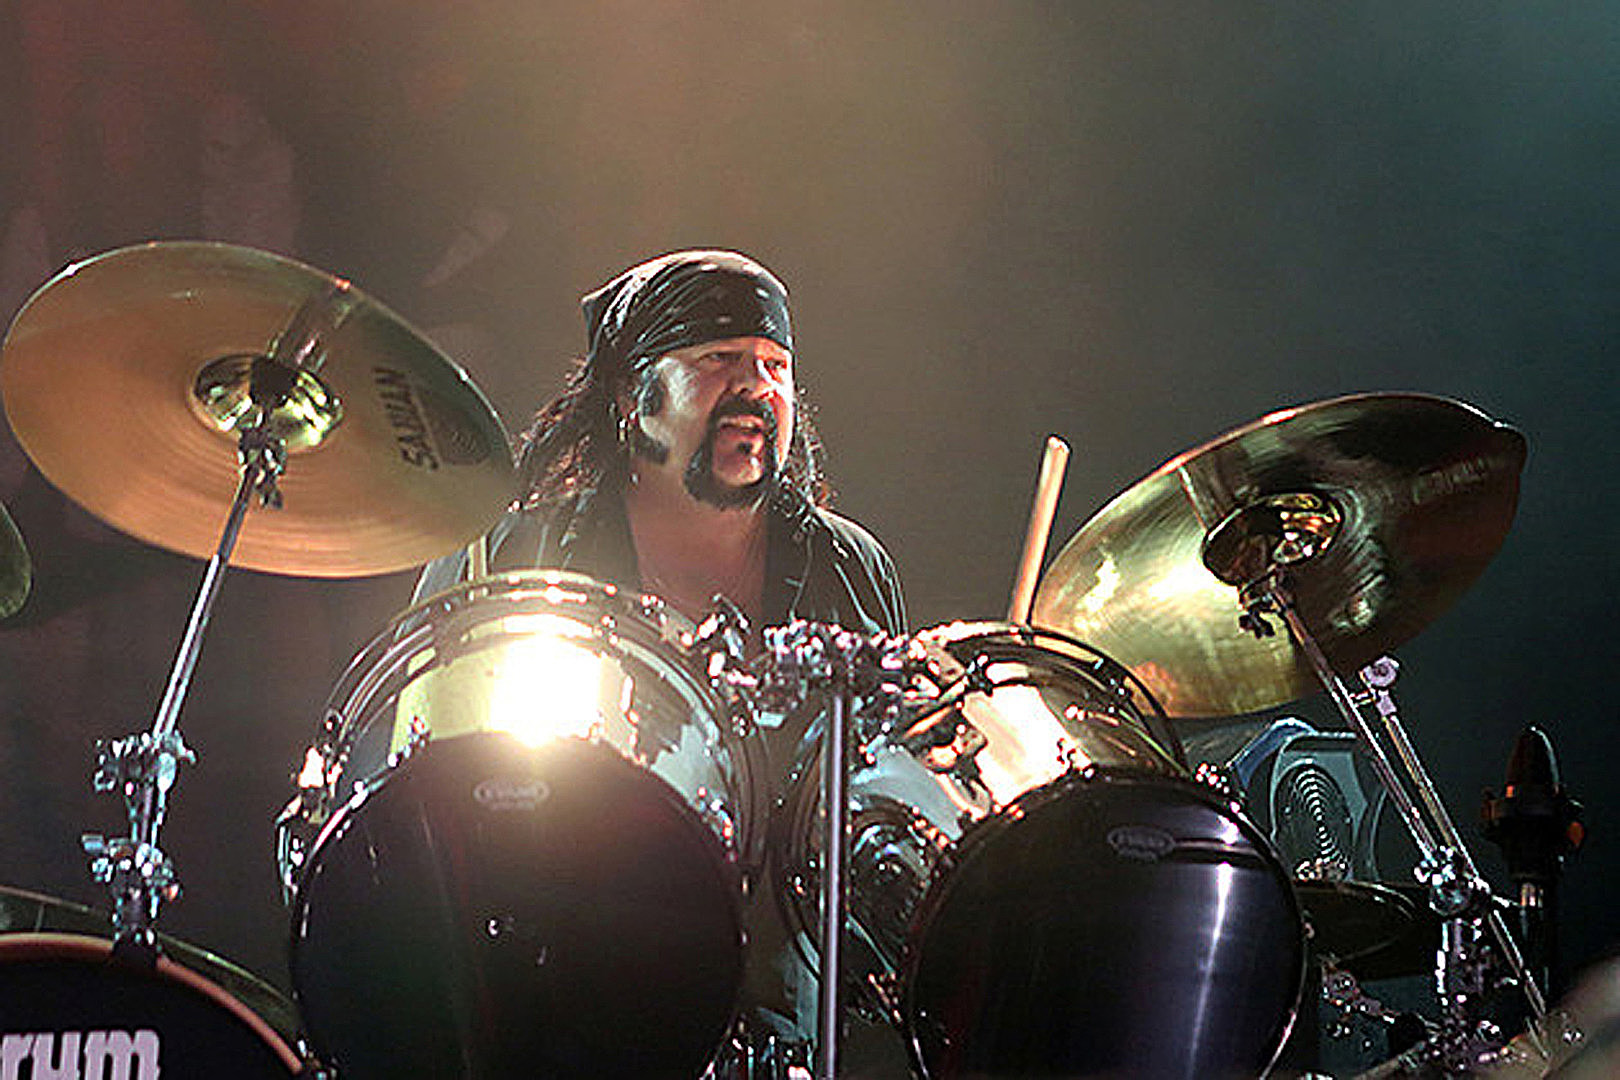 Report: Vinnie Paul Died From 'Major Heart Attack'